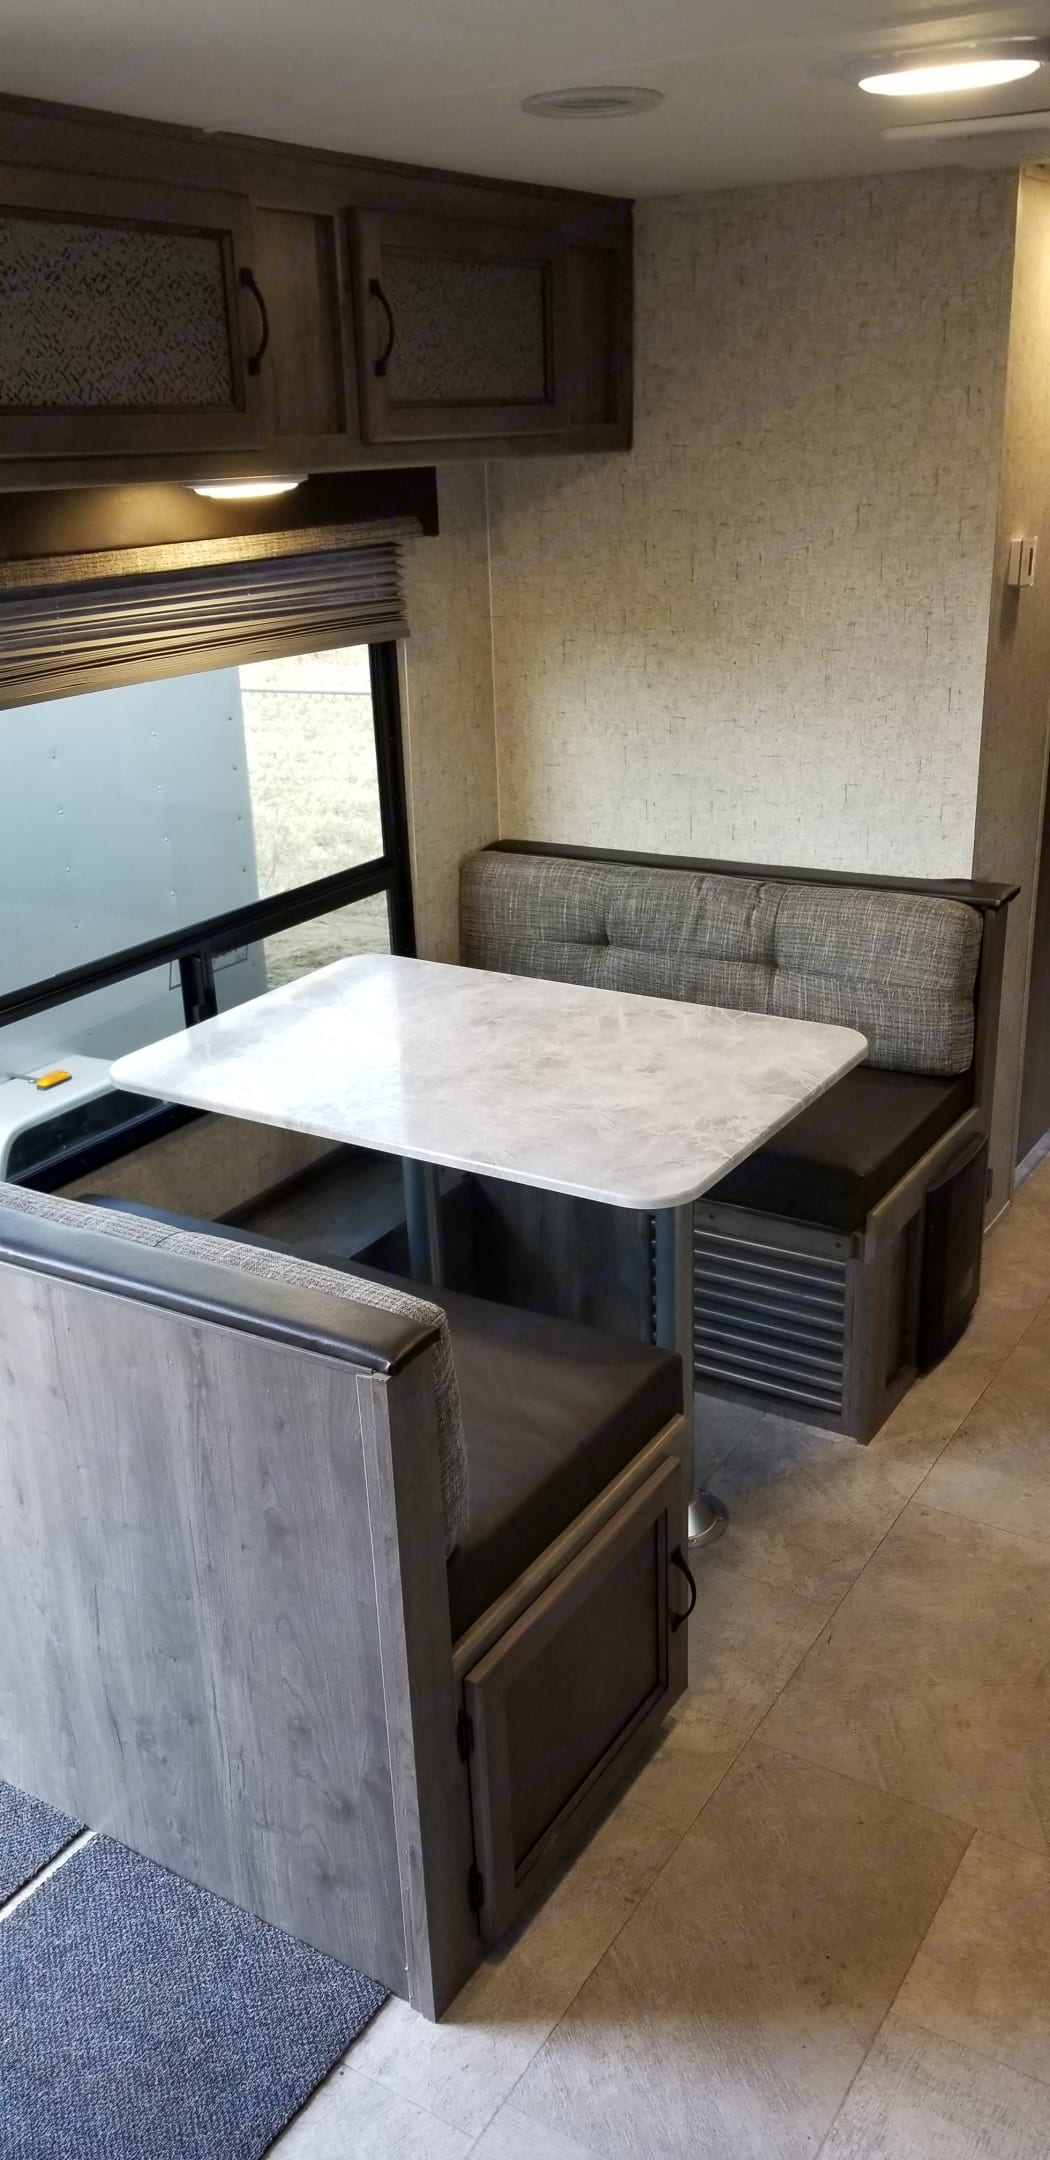 Dining room table with large window that faces the camp site. Coachmen Apex 2019